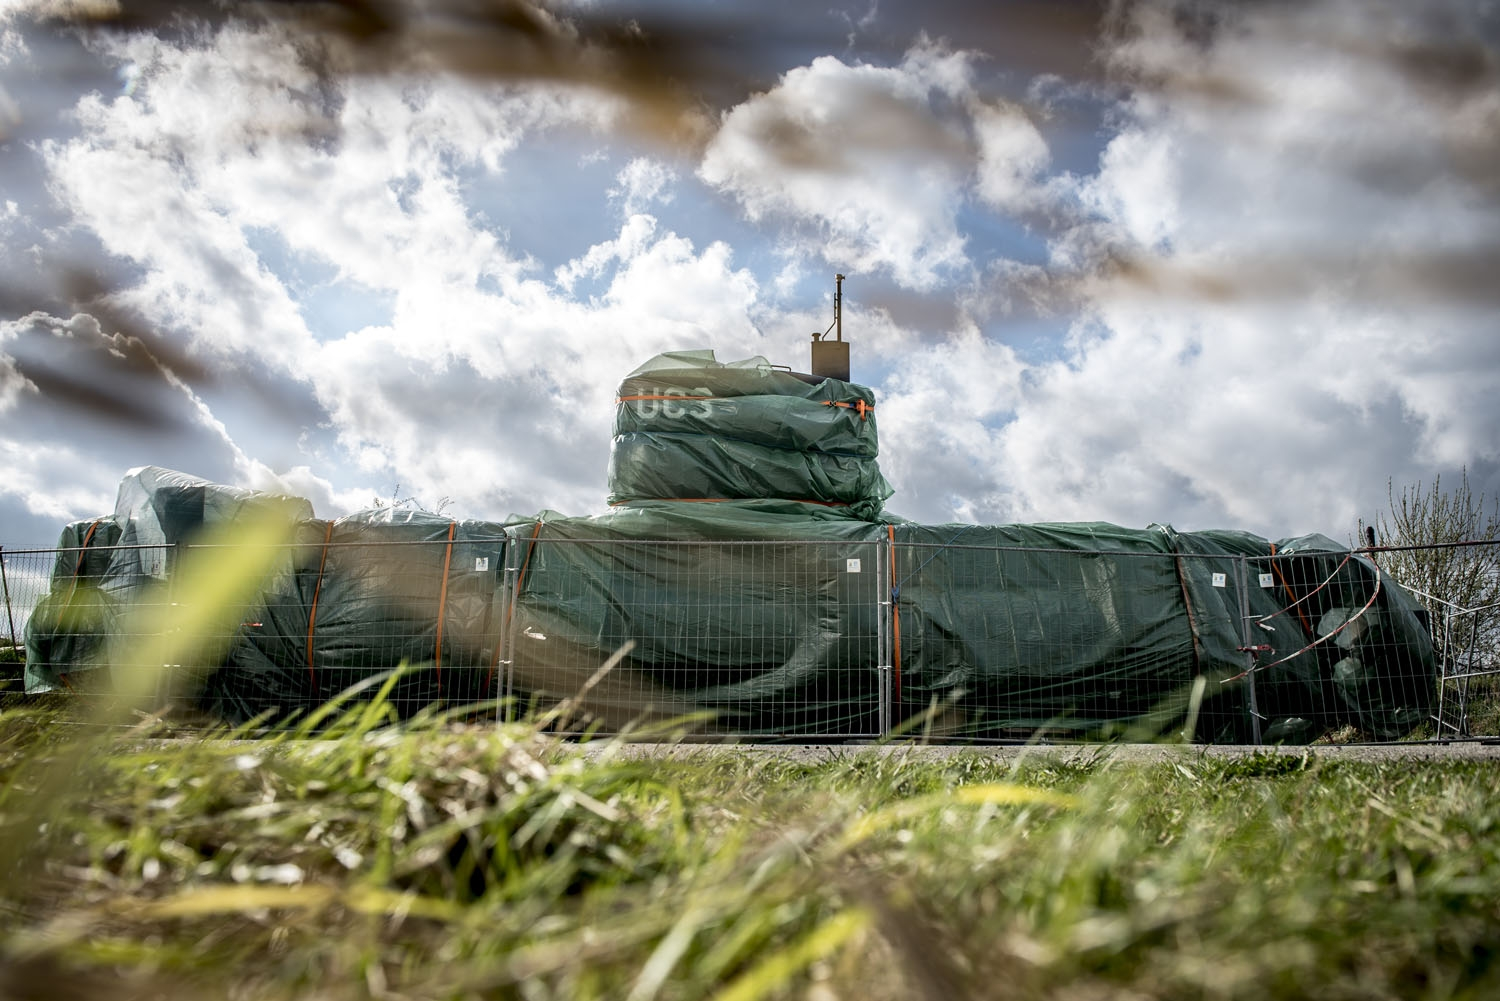 A picture taken on April 25, 2018 shows the homemade submarine UC3 Nautilus as it is covered with green tarpaulin in Nordhavn, a harbour area in Copenhagen, Denmark.